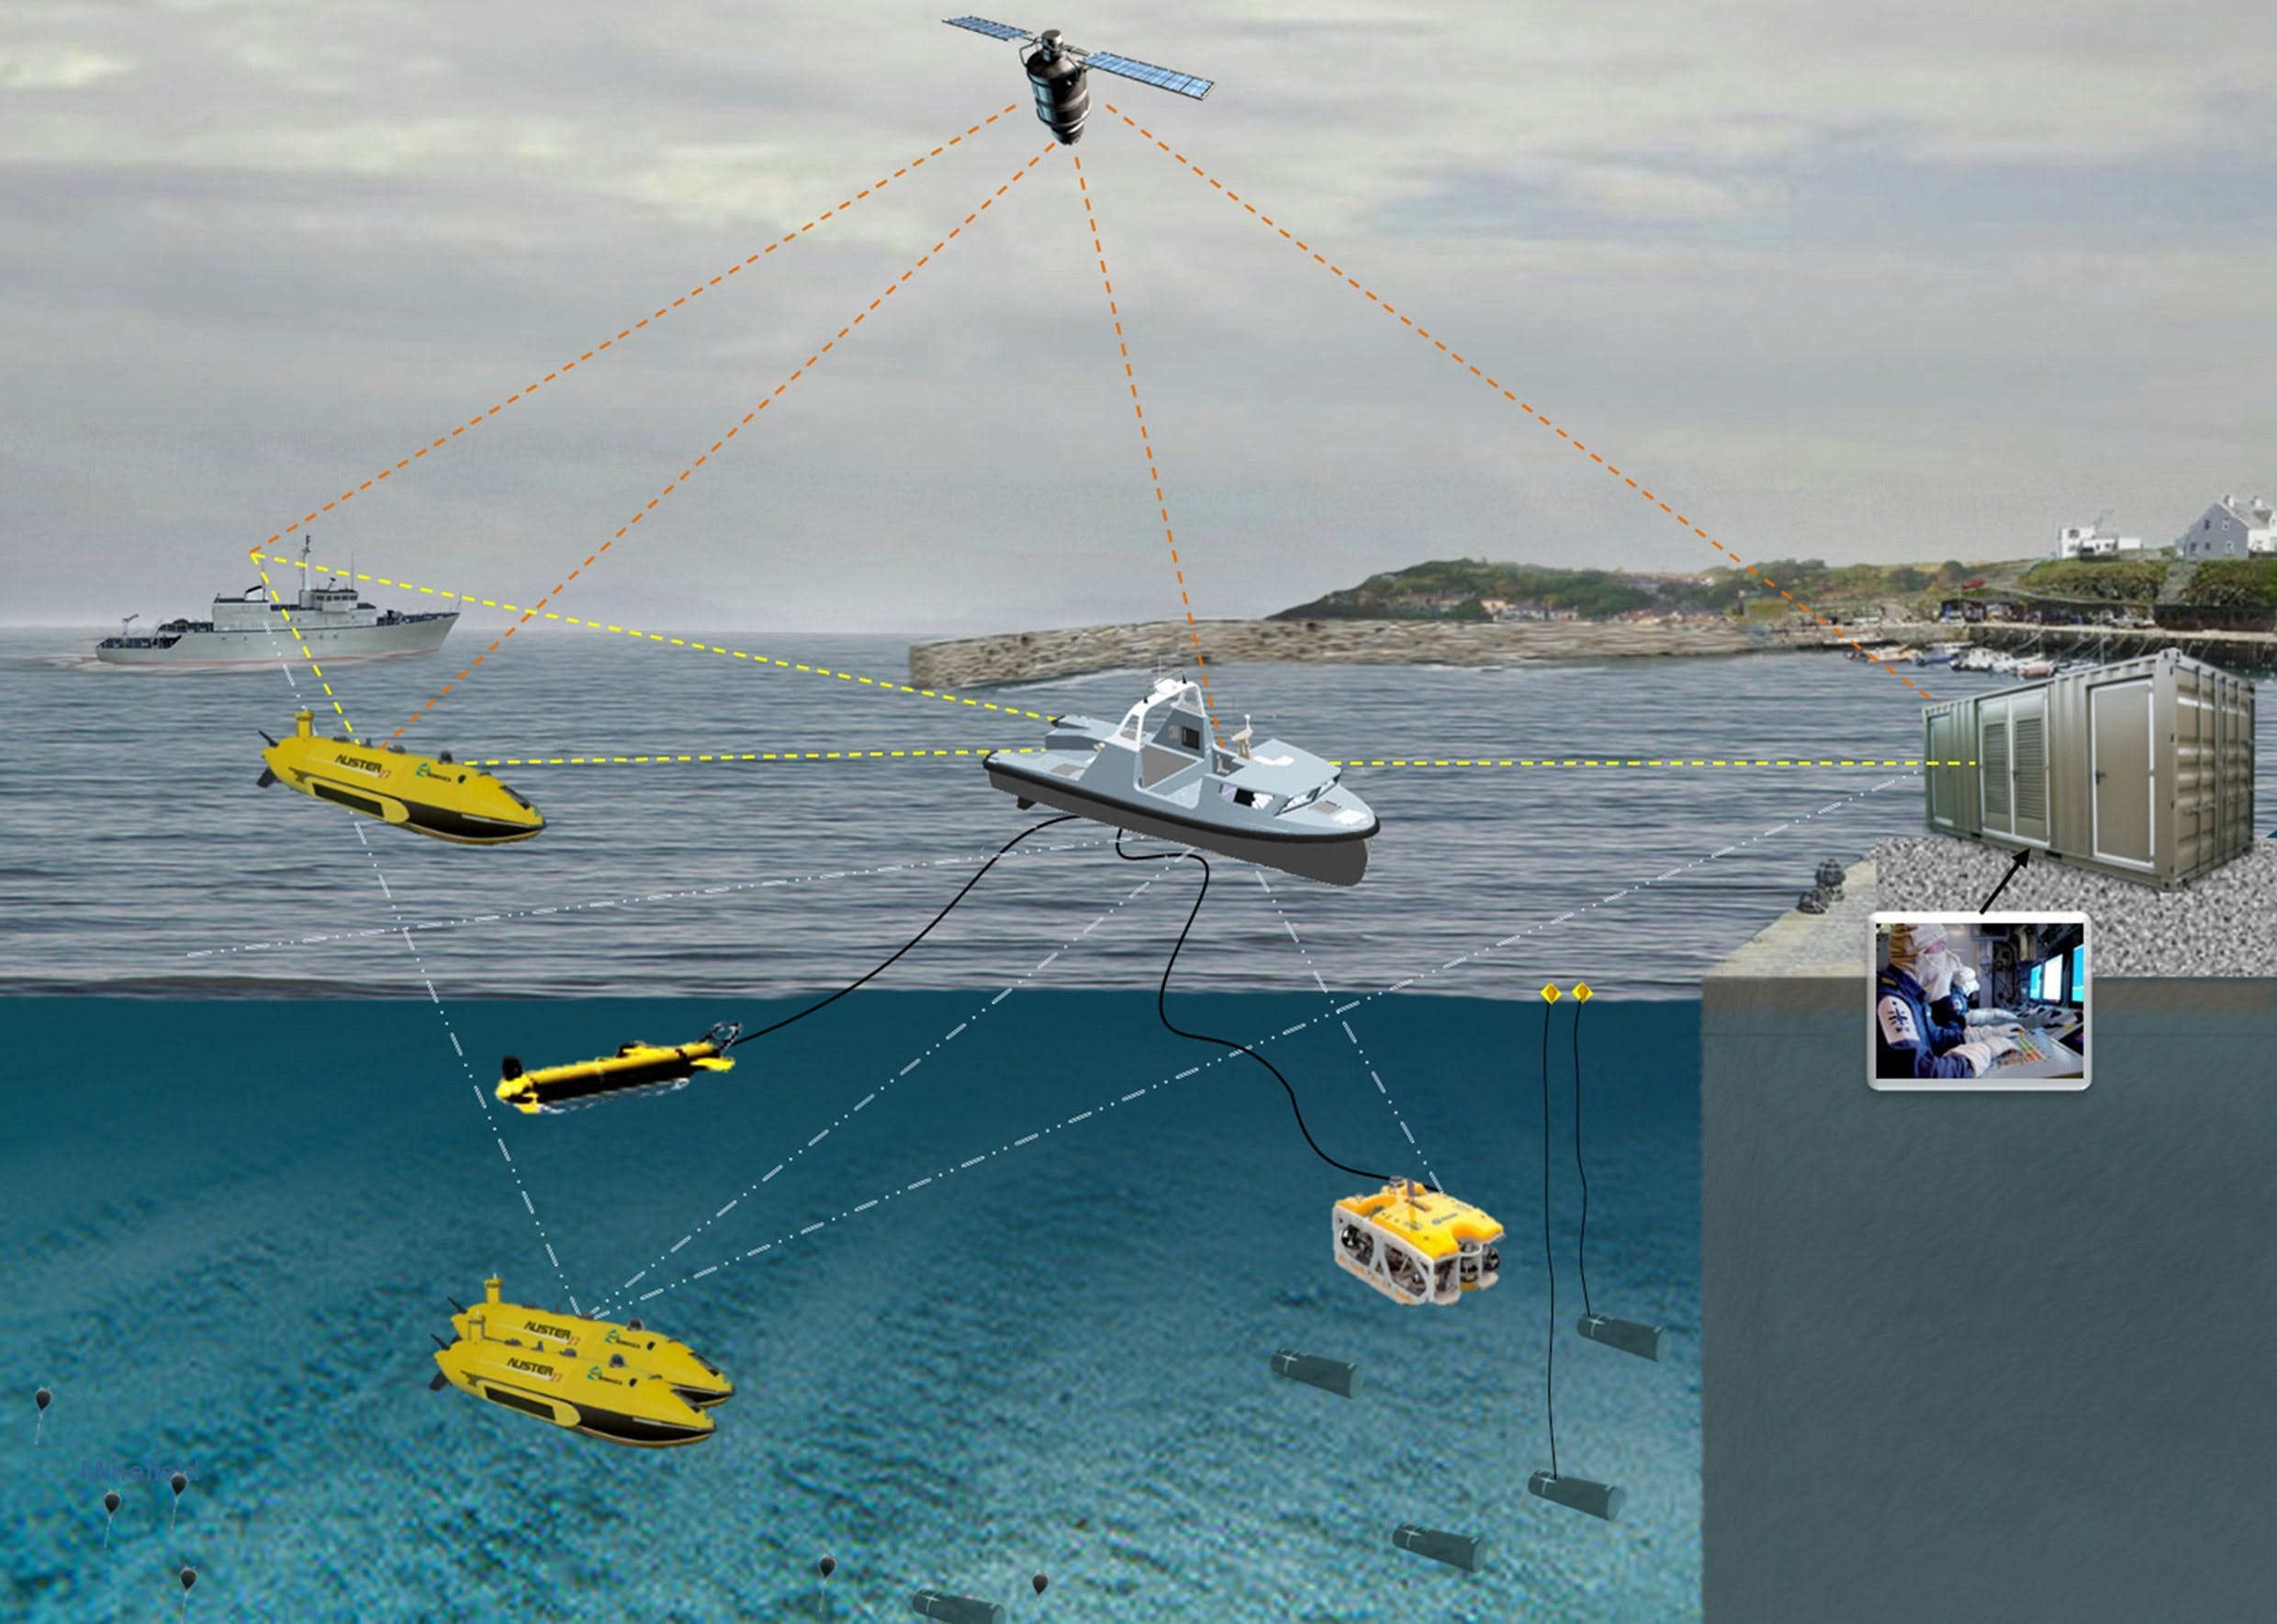 Infographic shows Halcyon, a small Unmanned Surface Vehicle (USV) – just 12 metres long and 3.5 metres wide – and the sonar it tows is Thales's state-of-the-art Towed Synthetic Aperture Sonar (T-SAS). As part of the MMCM programme, Thales is providing systems to both the French Navy and Royal Navy for two years of evaluation testing. Each system will comprise a USV (Unmanned Surface Vehicle) equipped with an autonomous navigation system, an obstacle detection and avoidance sonar, a threat identification and neutralisation capability based on ROVs (Remotely Operated Vehicles), a T-SAS (Towed Synthetic Aperture Sonar) and AUVs (Autonomous Underwater Vehicles). The geolocated AUVs will use the latest-generation synthetic aperture sonar SAMDIS with multi-aspect functionality for improved classification. They will perform their tasks autonomously with control from a host ship or shore-based station via high-data-rate communication links. The systems, meeting the operational requirements of both nations, incorporate state-of-the-art technologies including very high-resolution multiview imaging sonars and sophisticated analysis tools to provide unparalleled levels of performance in automatic threat recognition and classification. Copyright Thales 2016.